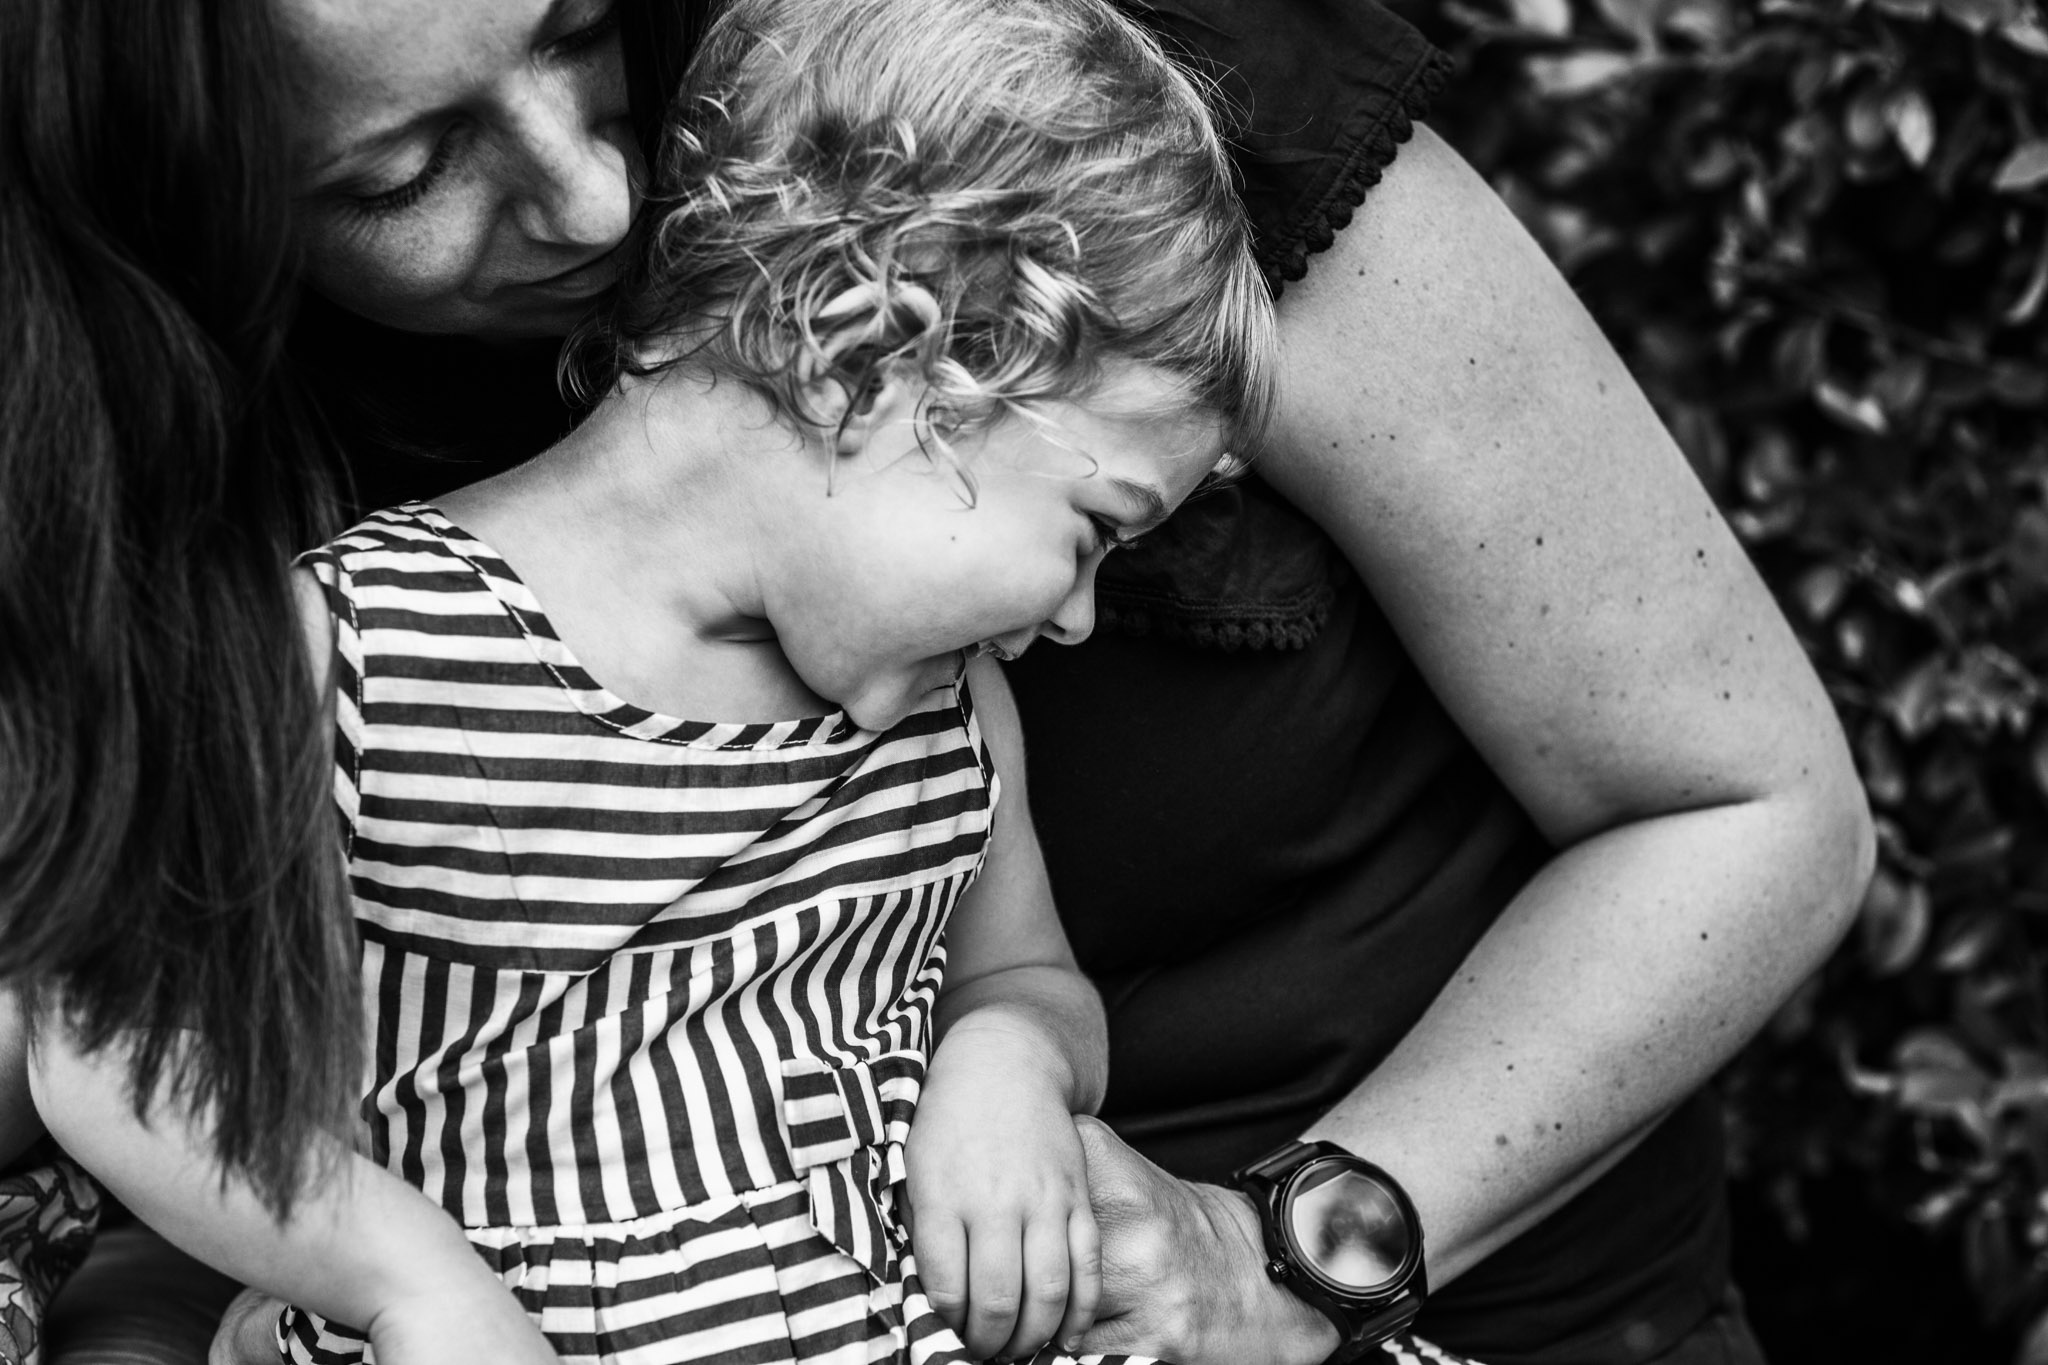 mother-snuggling-into-laughing-toddler (1 of 1).jpg